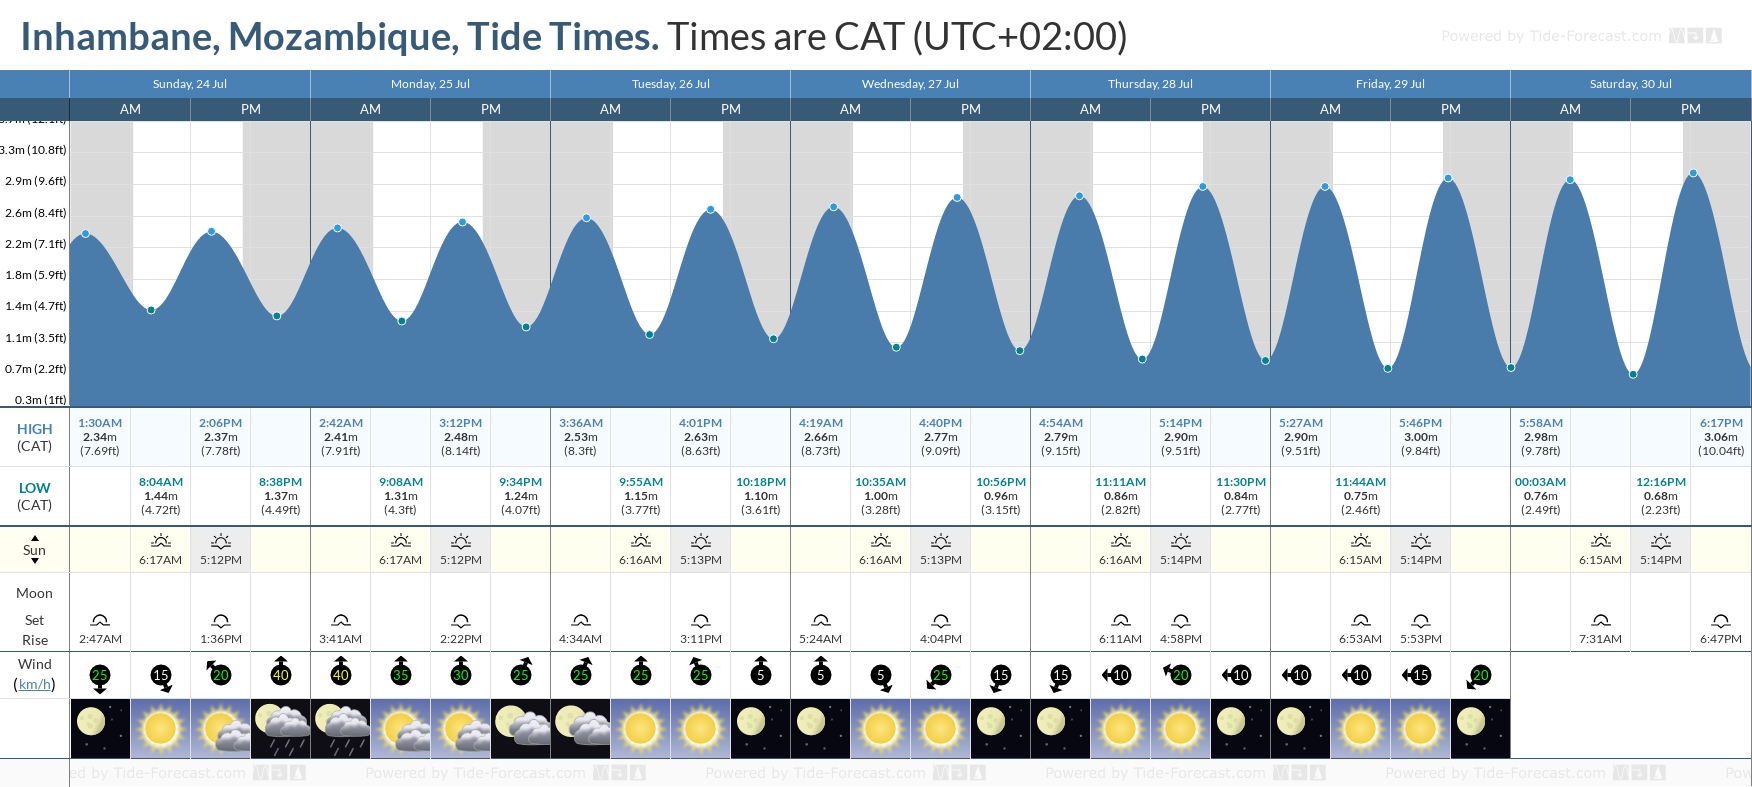 Inhambane, Mozambique Tide Chart including high and low tide tide times for the next 7 days